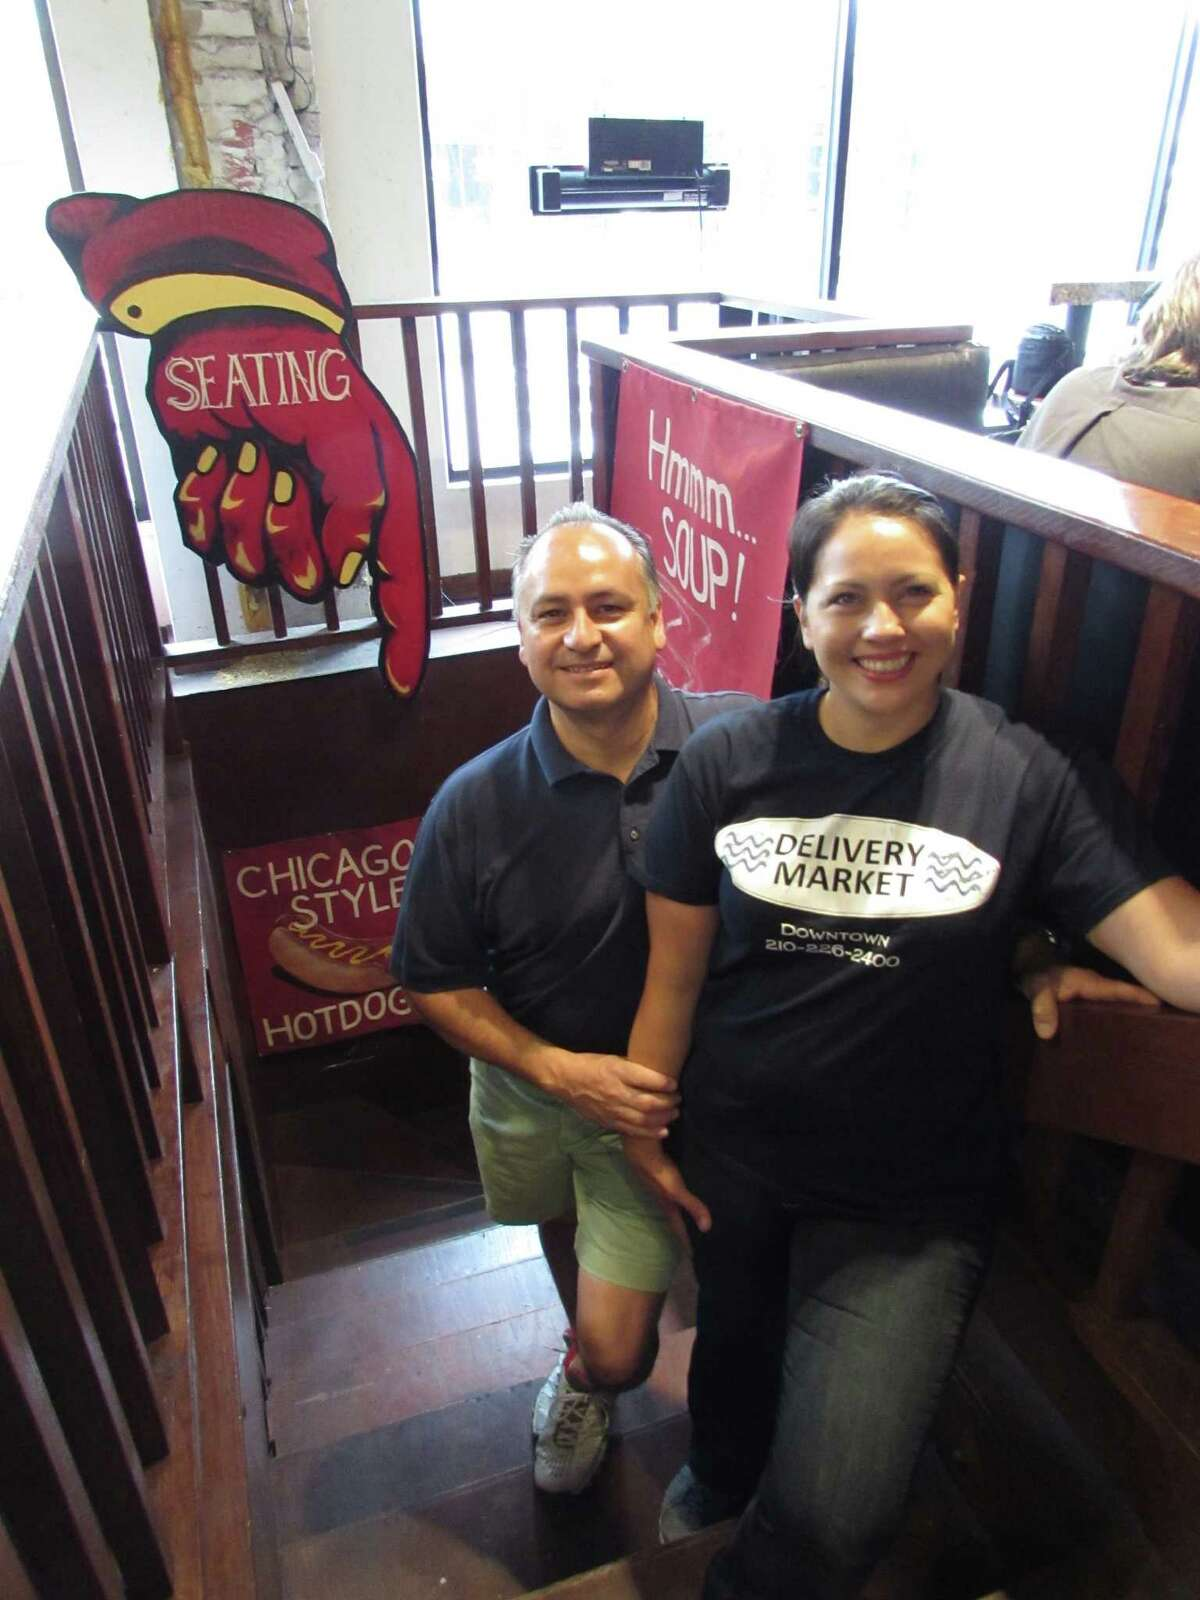 Delivery Market owners Roland and Ruby Polanco thanked regulars for their business and hinted at possible future projects.